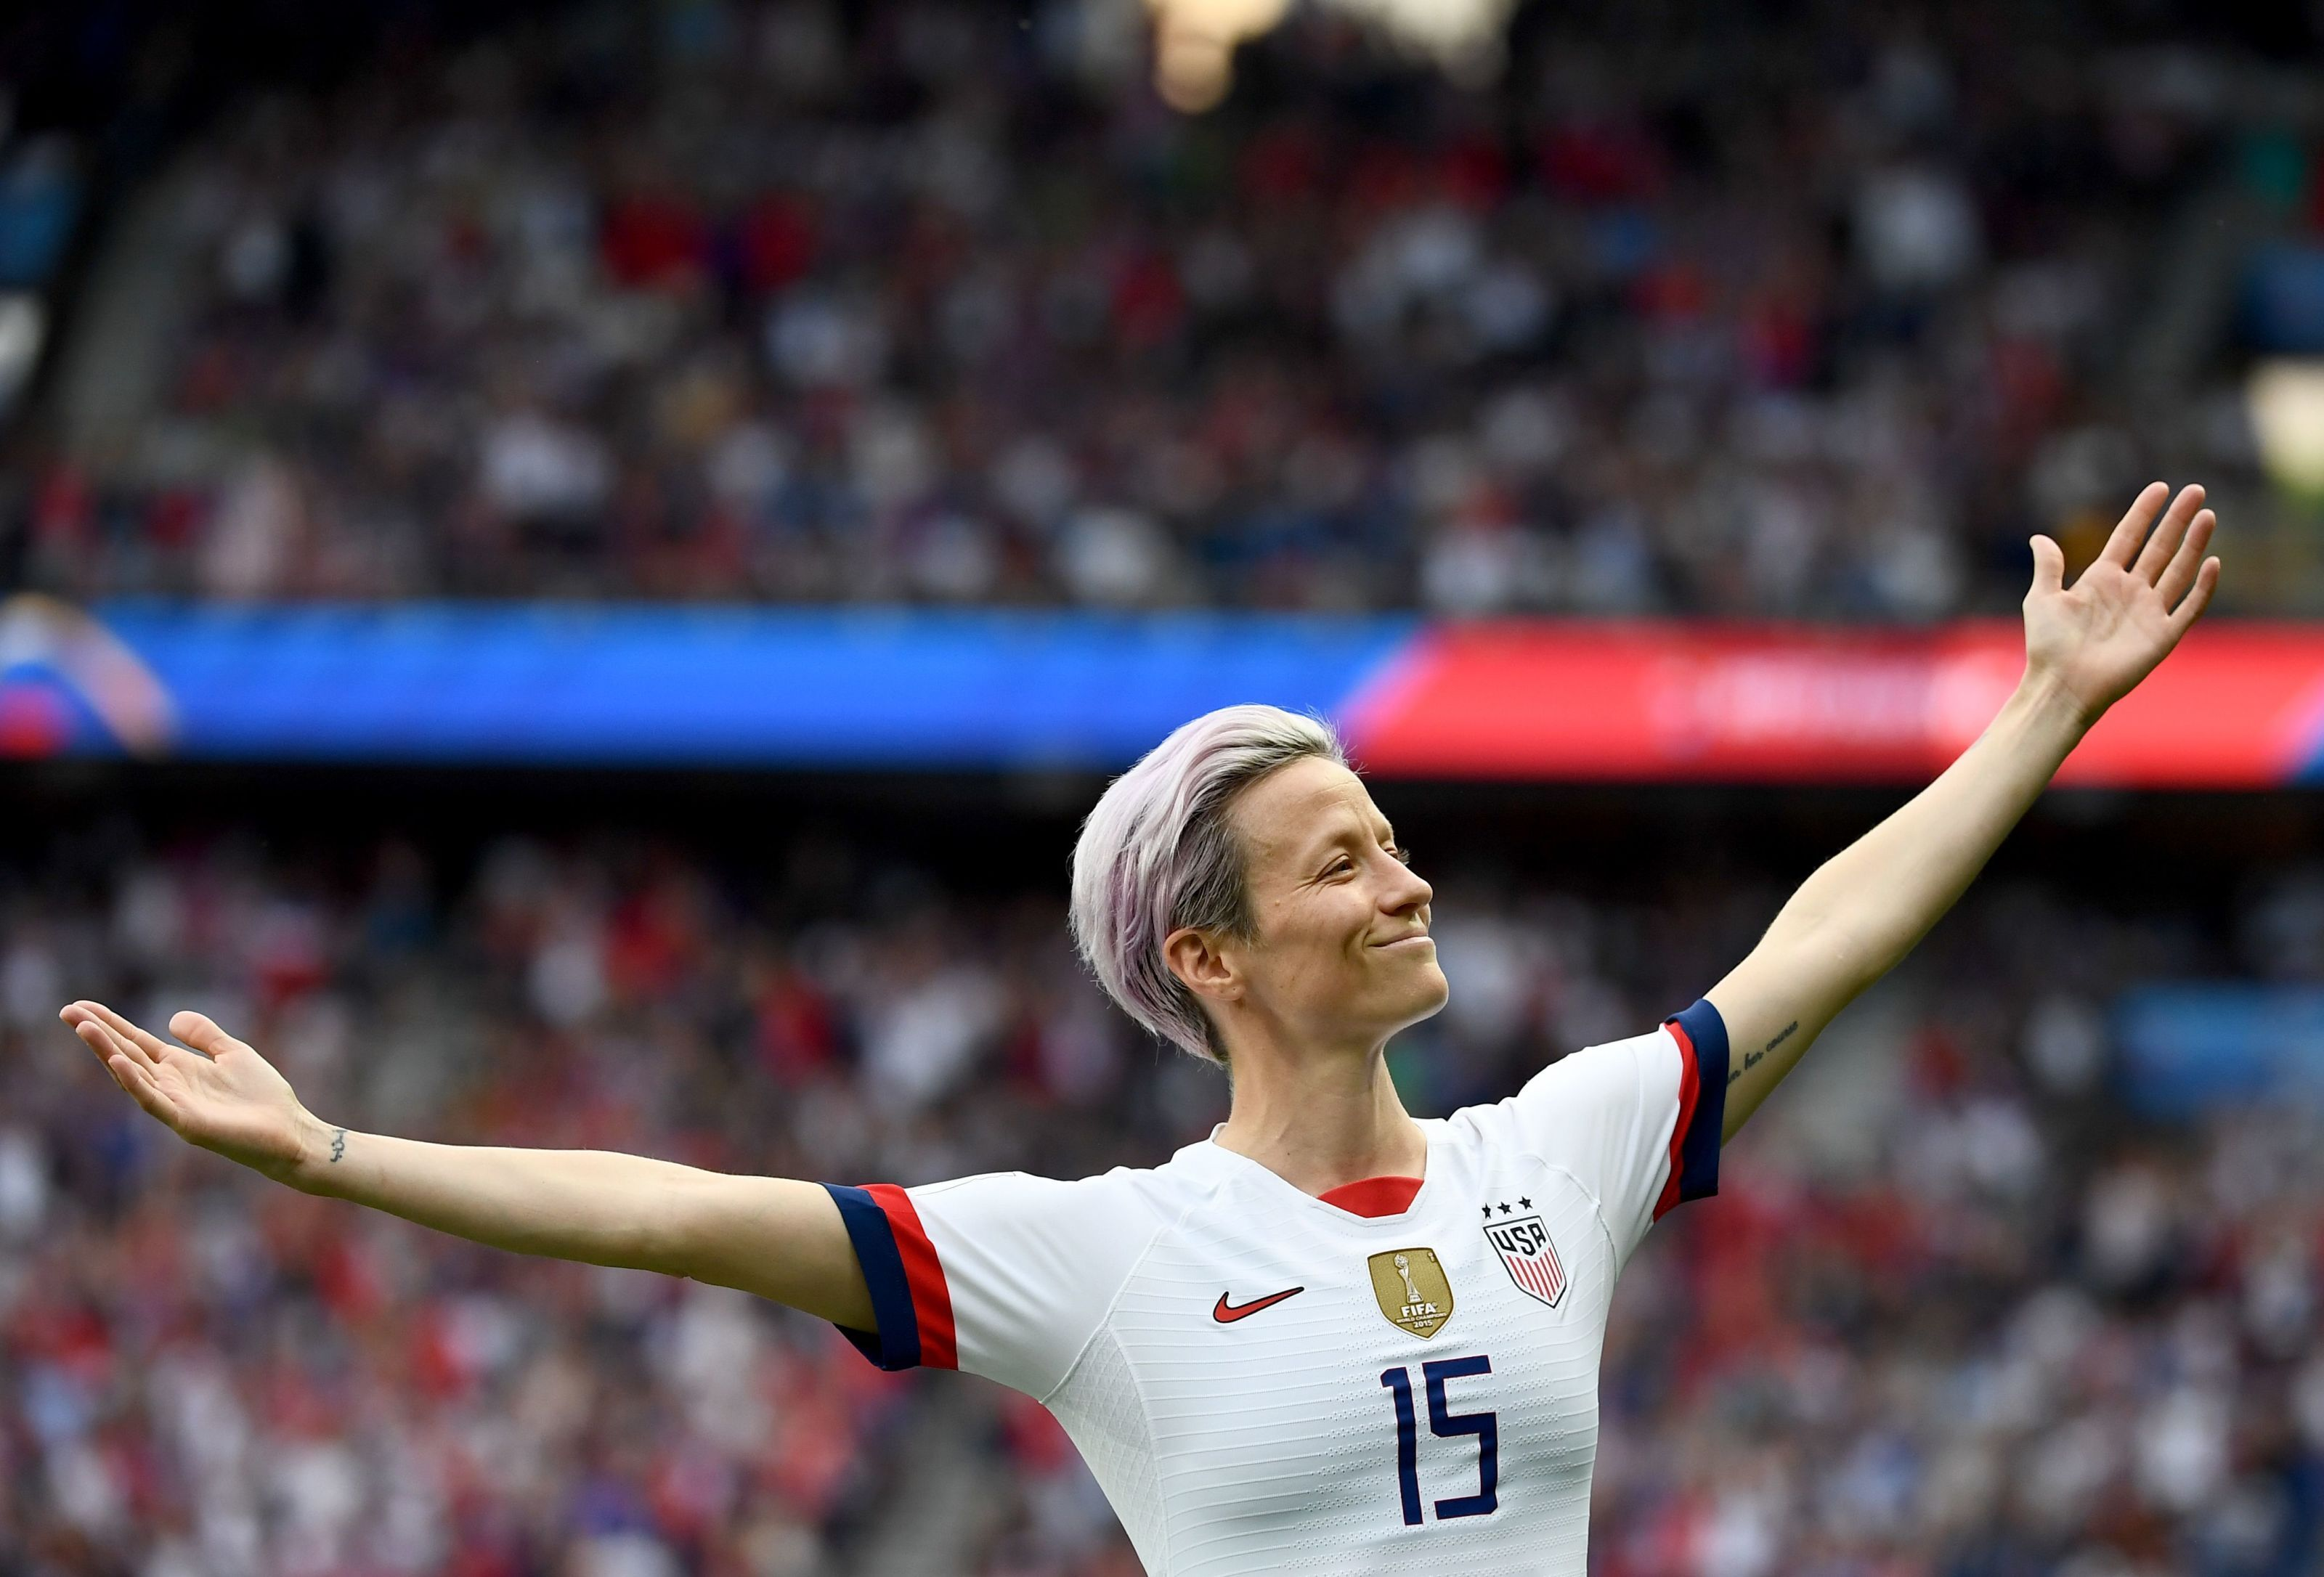 Megan Rapinoe needs to be on the cover of FIFA 20